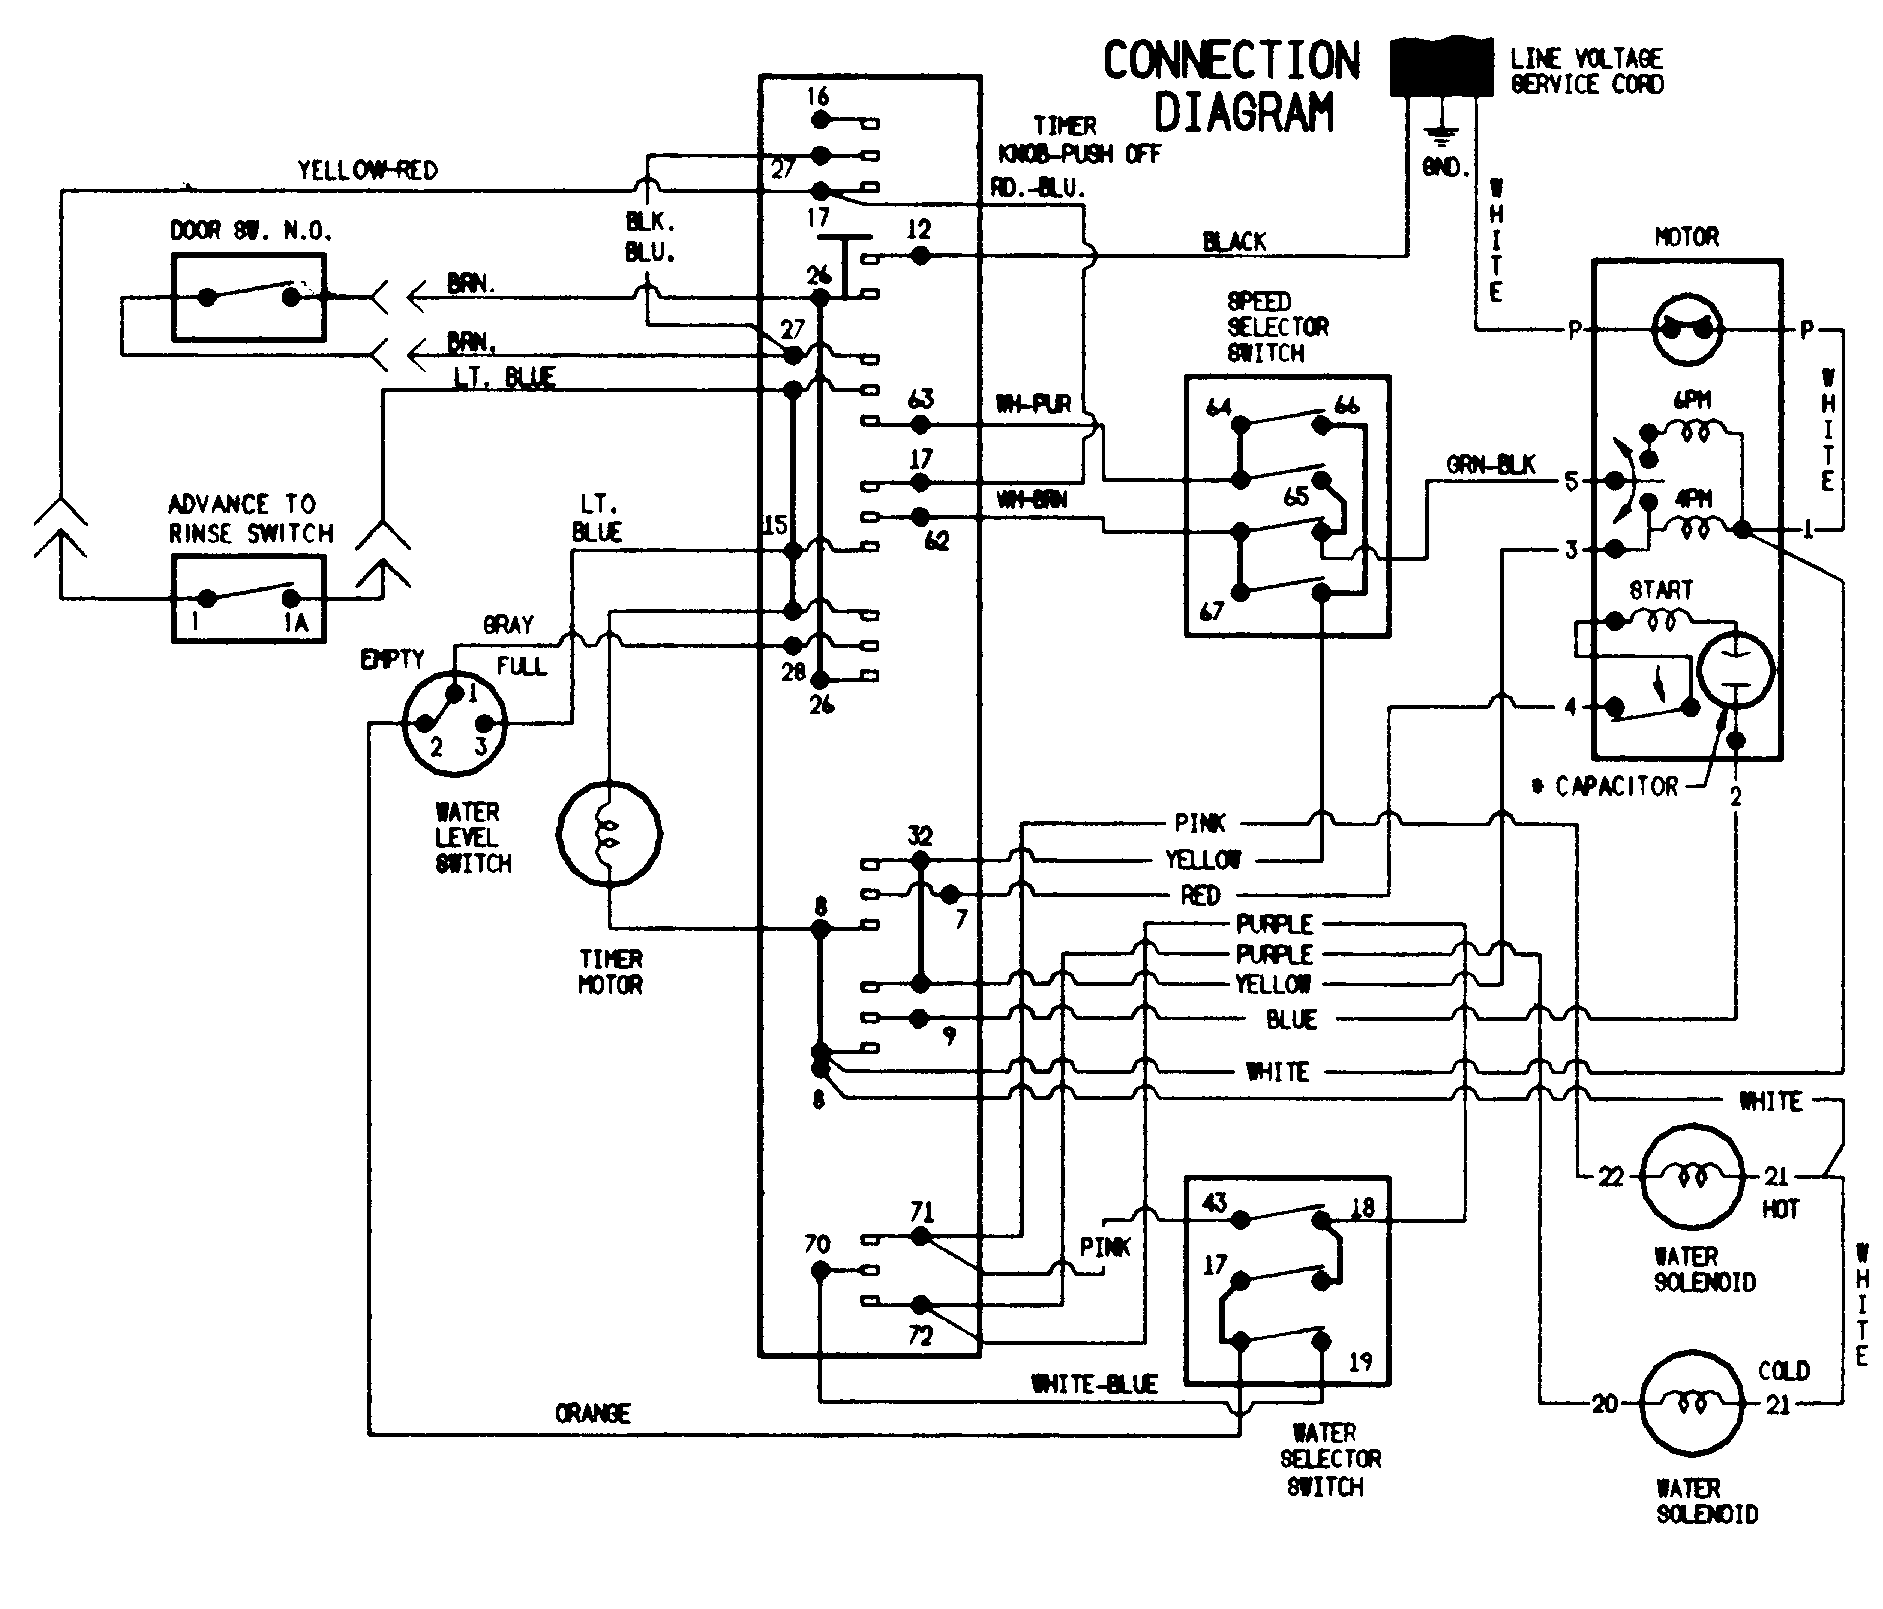 hight resolution of whirlpool washing machine wiring diagram wiring diagram query godrej semi automatic washing machine wiring diagram semi automatic washing machine circuit